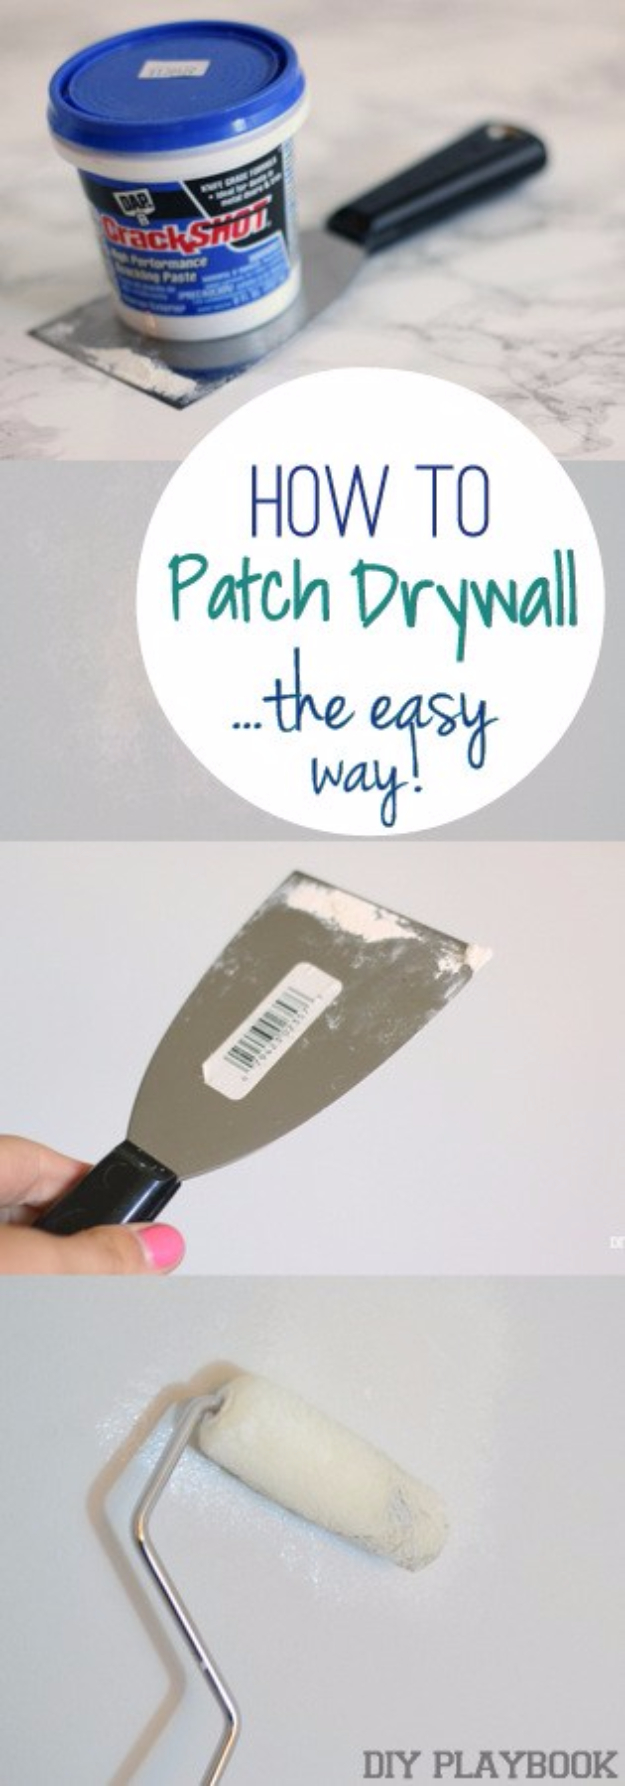 DIY Home Improvement Ideas- Patch Dry Wall The Easy Way - Home Repair Ideas, Home Repairs On A Budget, Home Repair Tips, Living Room, Bedroom, Kitchen Repair, Home Improvement, Quick And Easy Home Tips #diy #homeimprovement #diyhome #homerepair